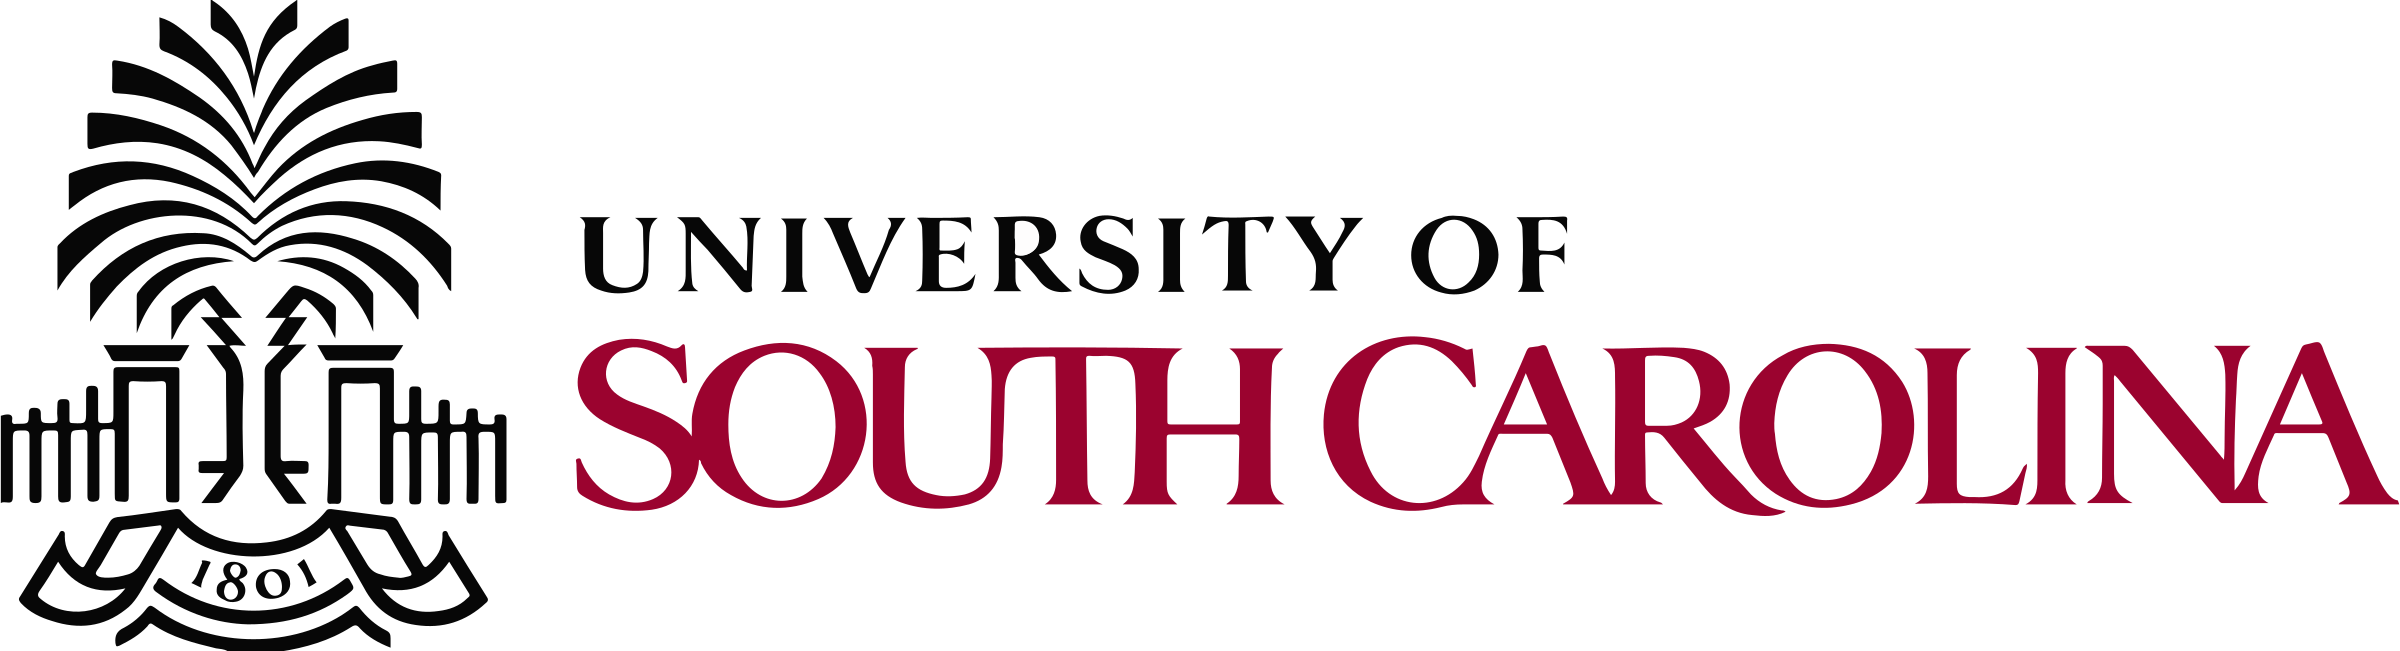 Image result for university of south carolina logo png